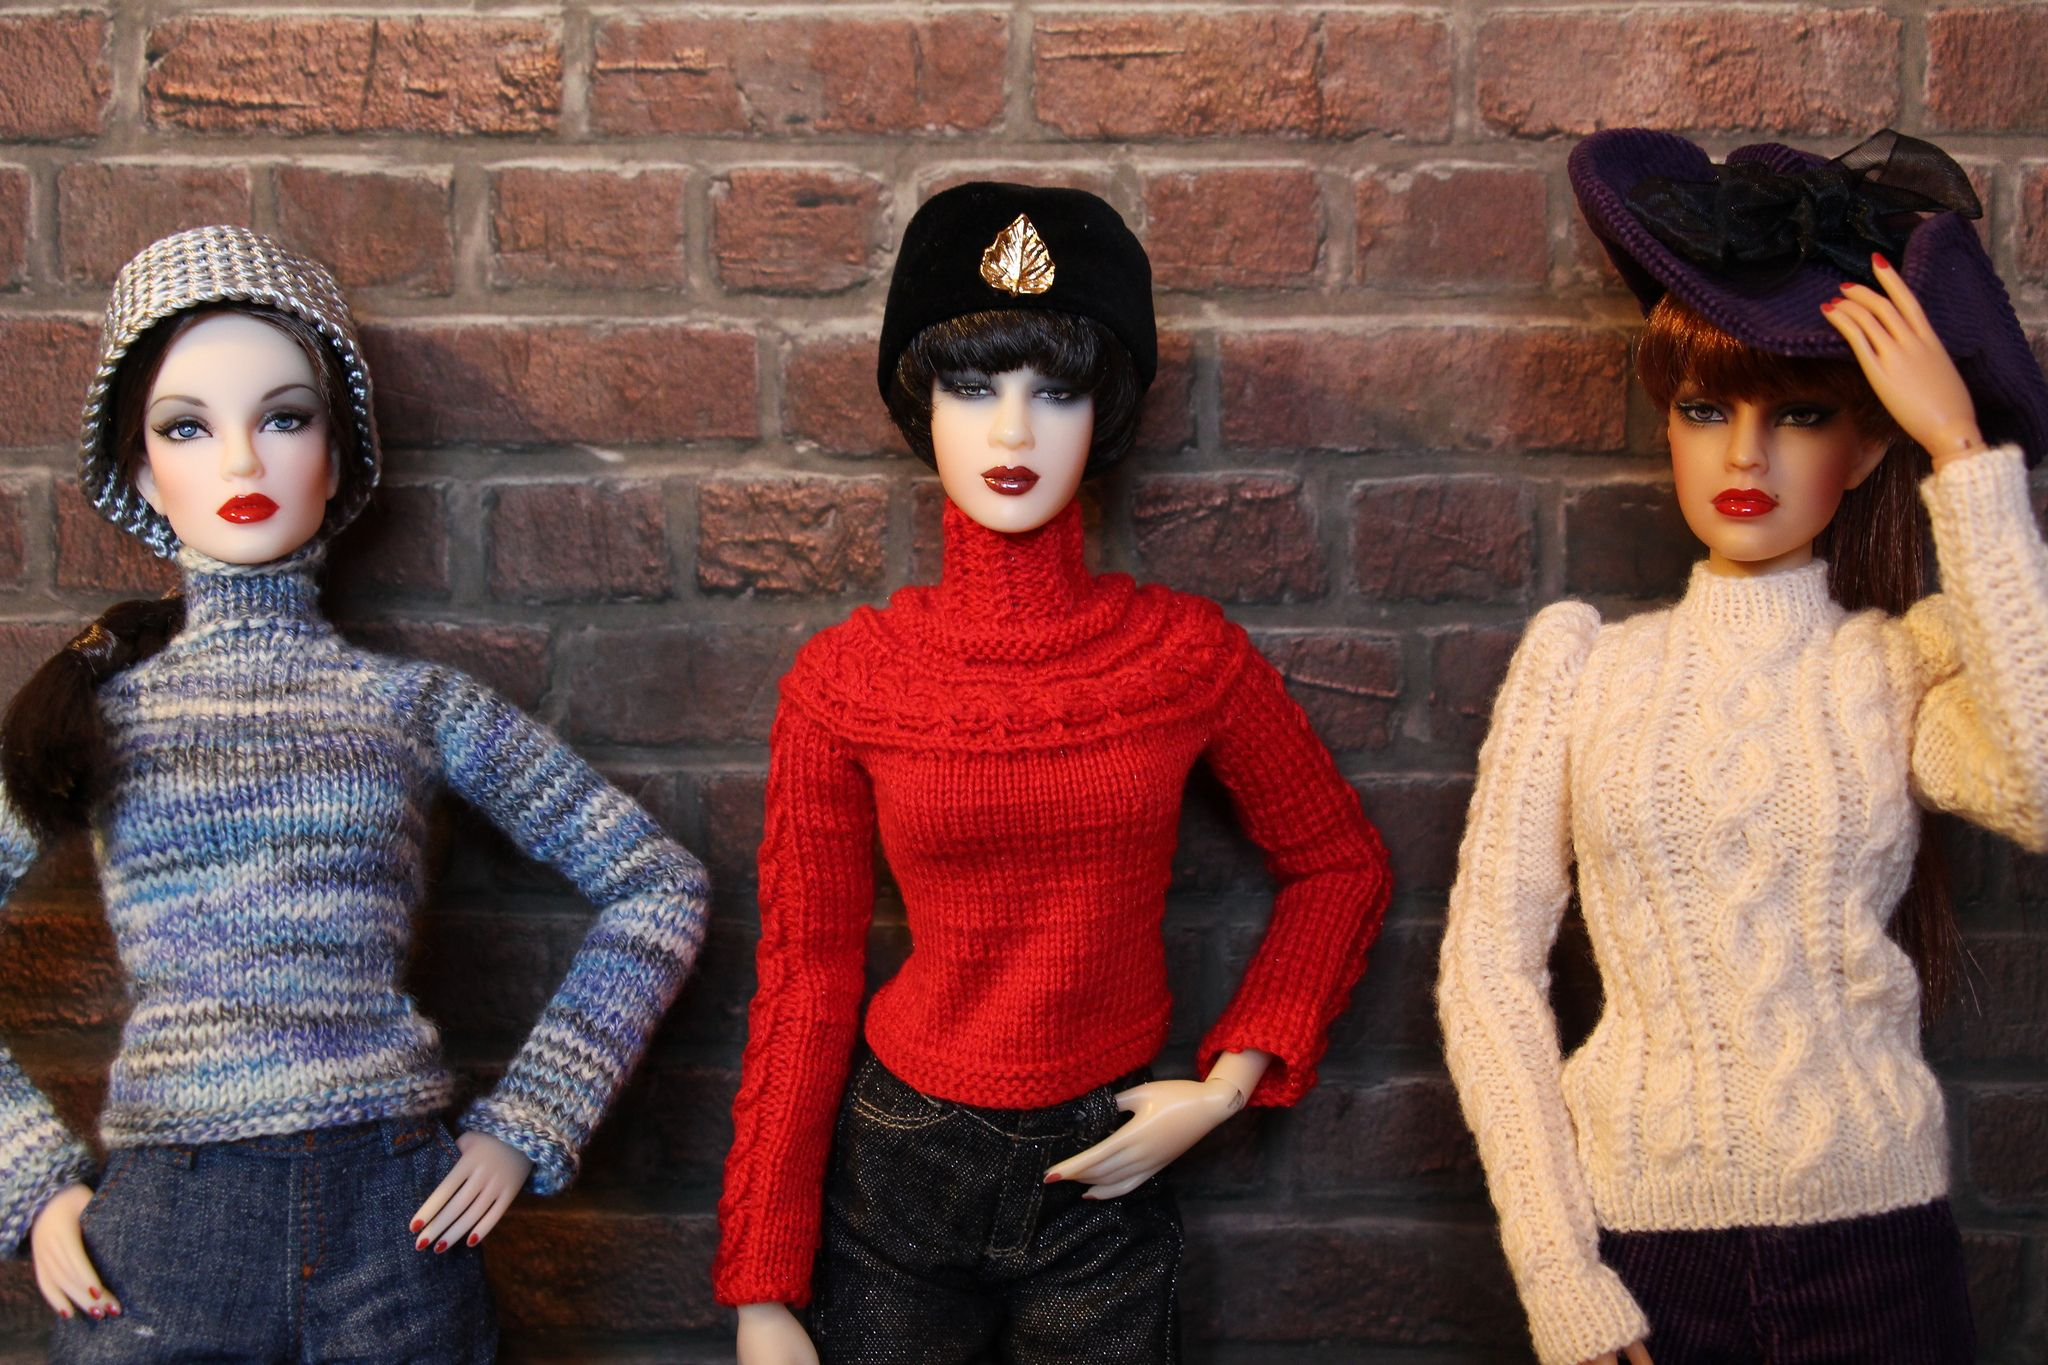 https://flic.kr/p/gSnWZJ | New Sweaters | Grace and Ginny model new sweaters, while Sun wears an older one. All sweaters by Brunhilde Fashion.